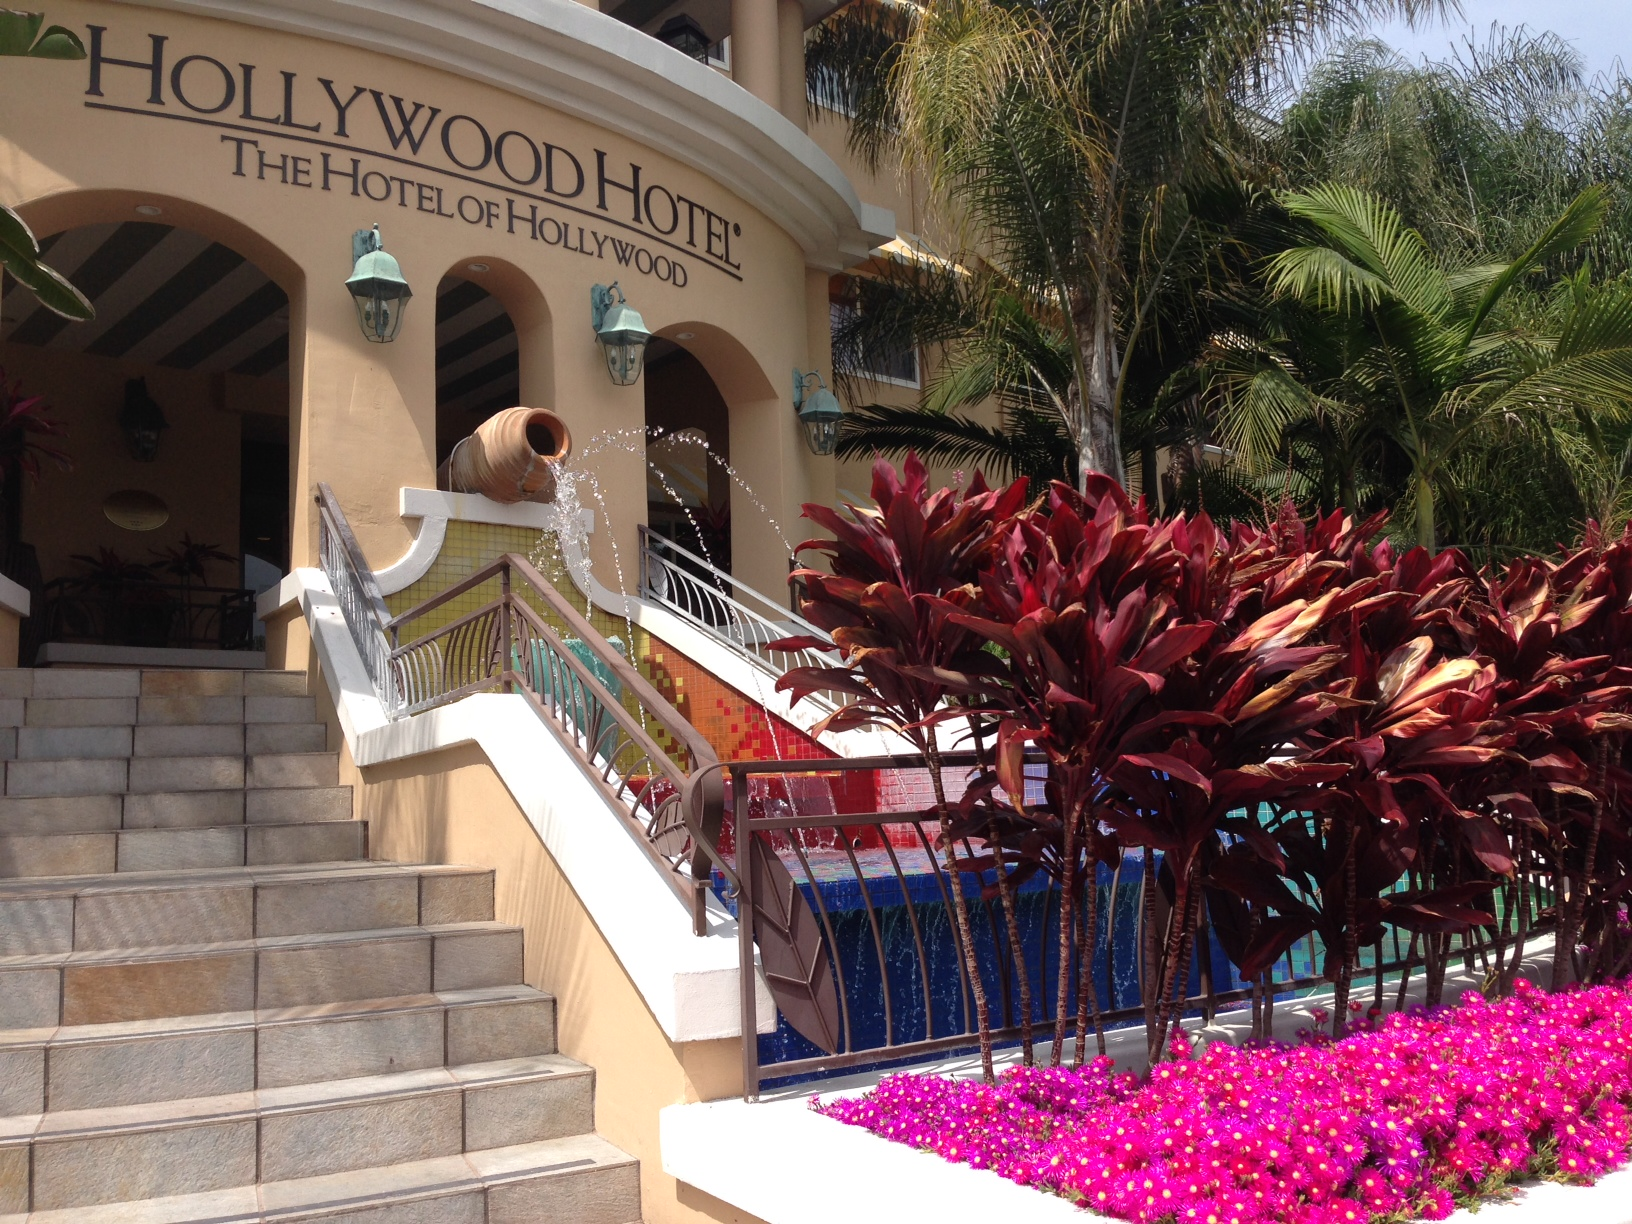 Hollywood Hotel — The Hotel of Hollywood near Universal Studios